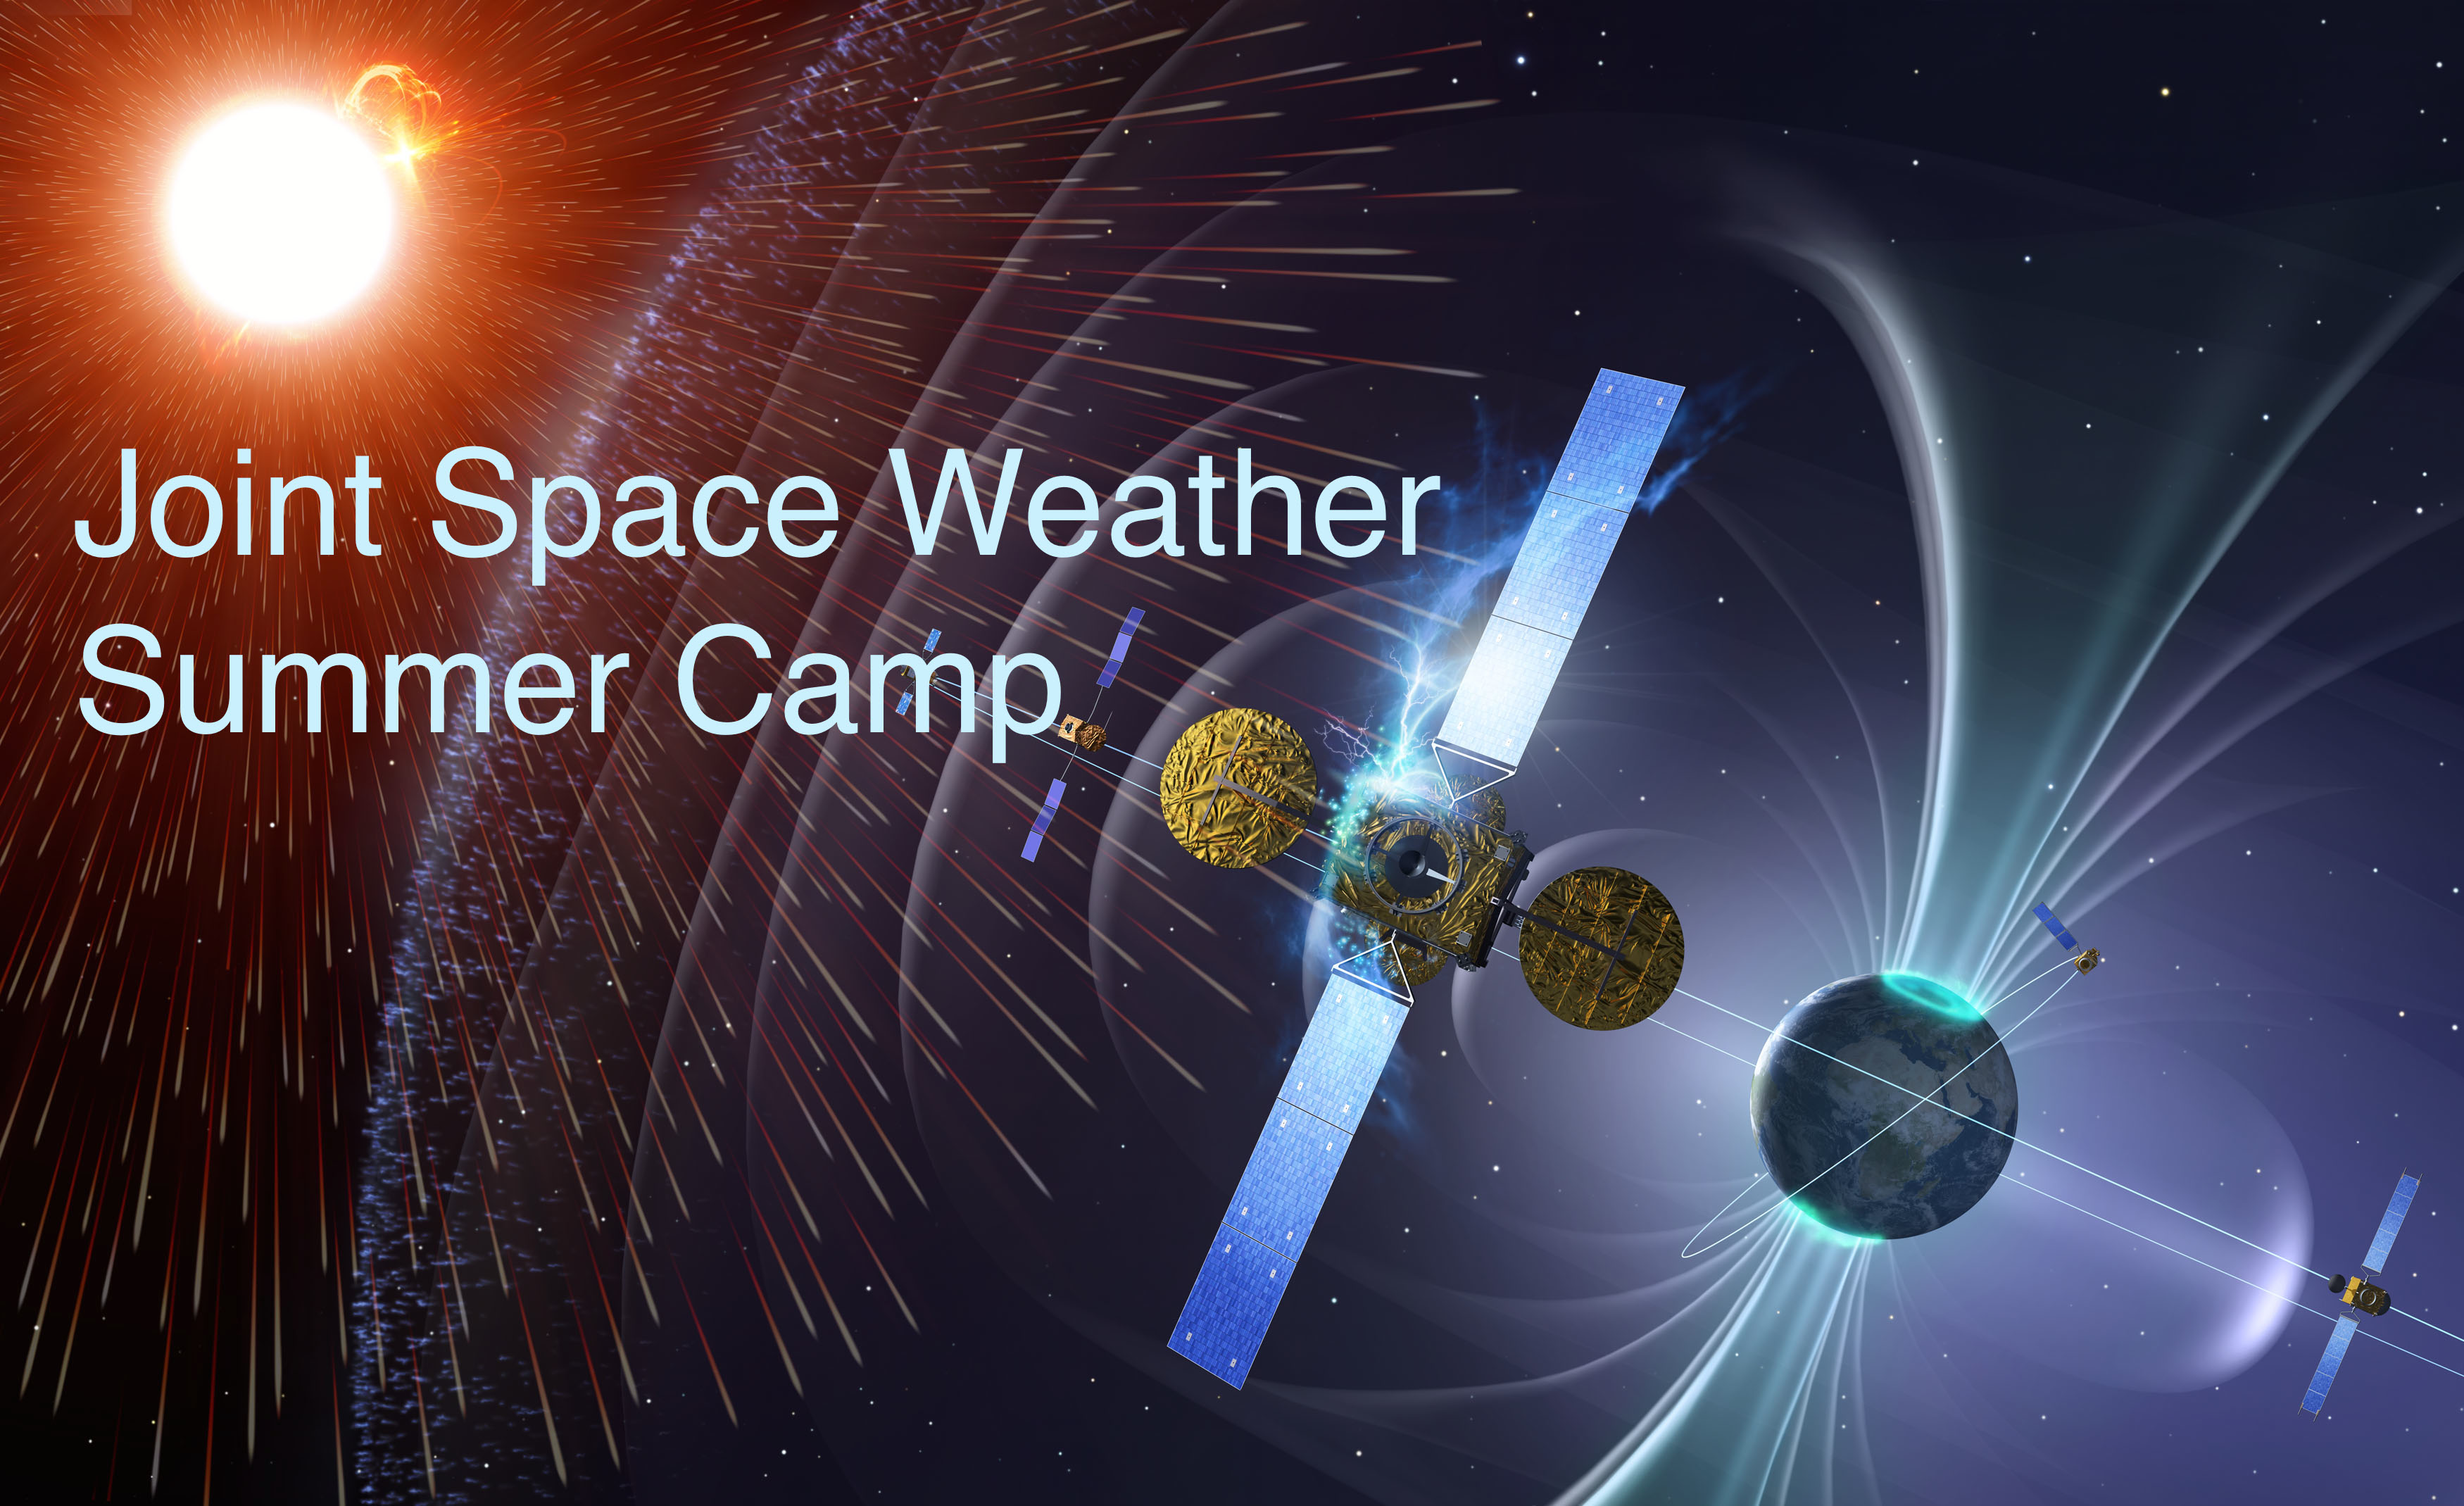 Joint Space Weather Summer Camp header graphic